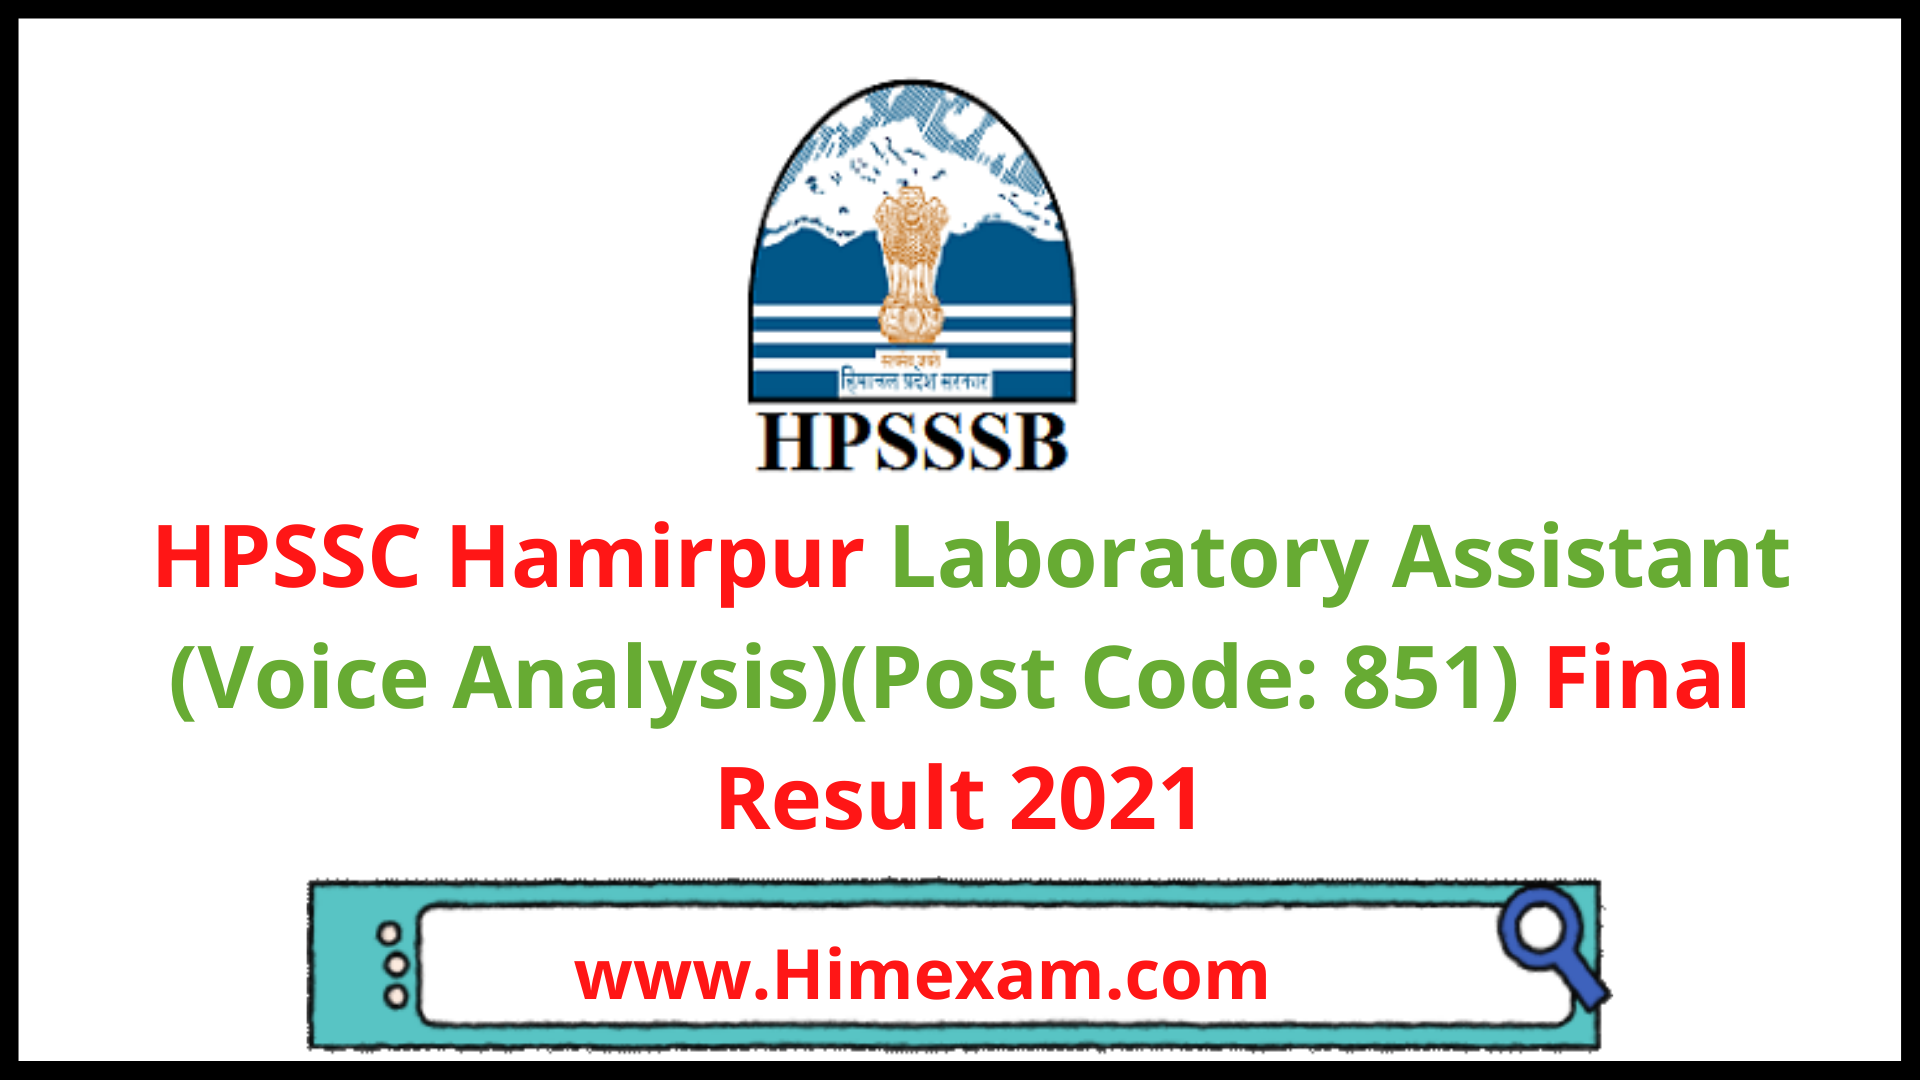 HPSSC Hamirpur Laboratory Assistant (Voice Analysis)(Post Code: 851) Final Result 2021